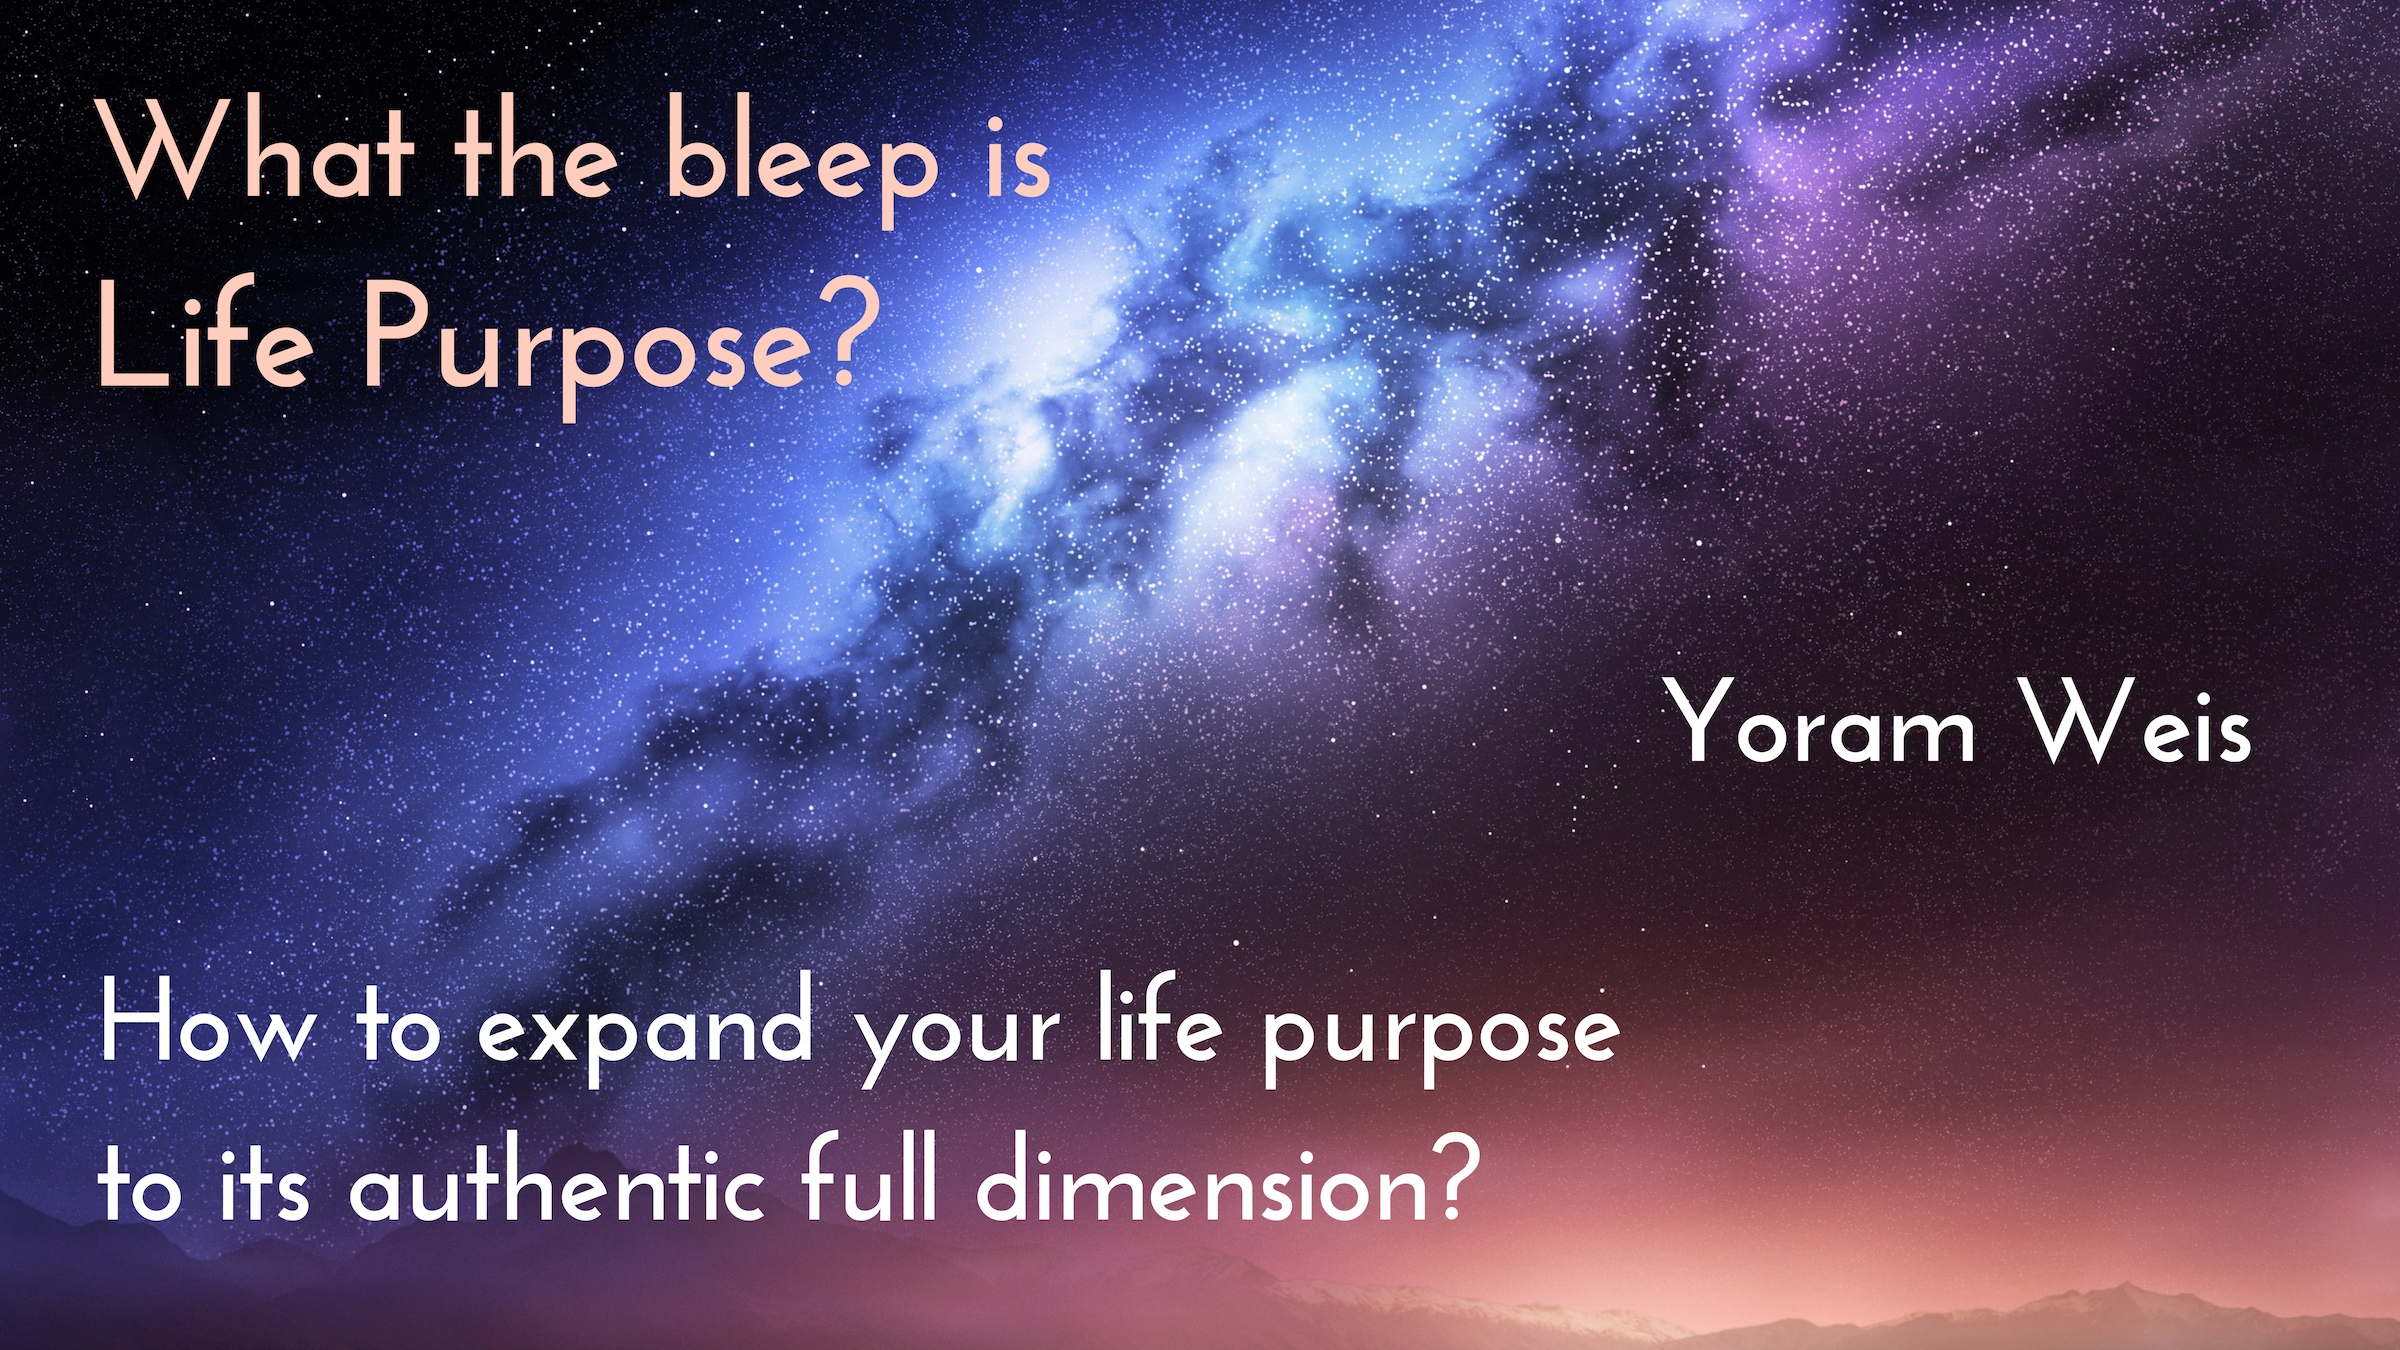 Video – What the bleep is Life Purpose?